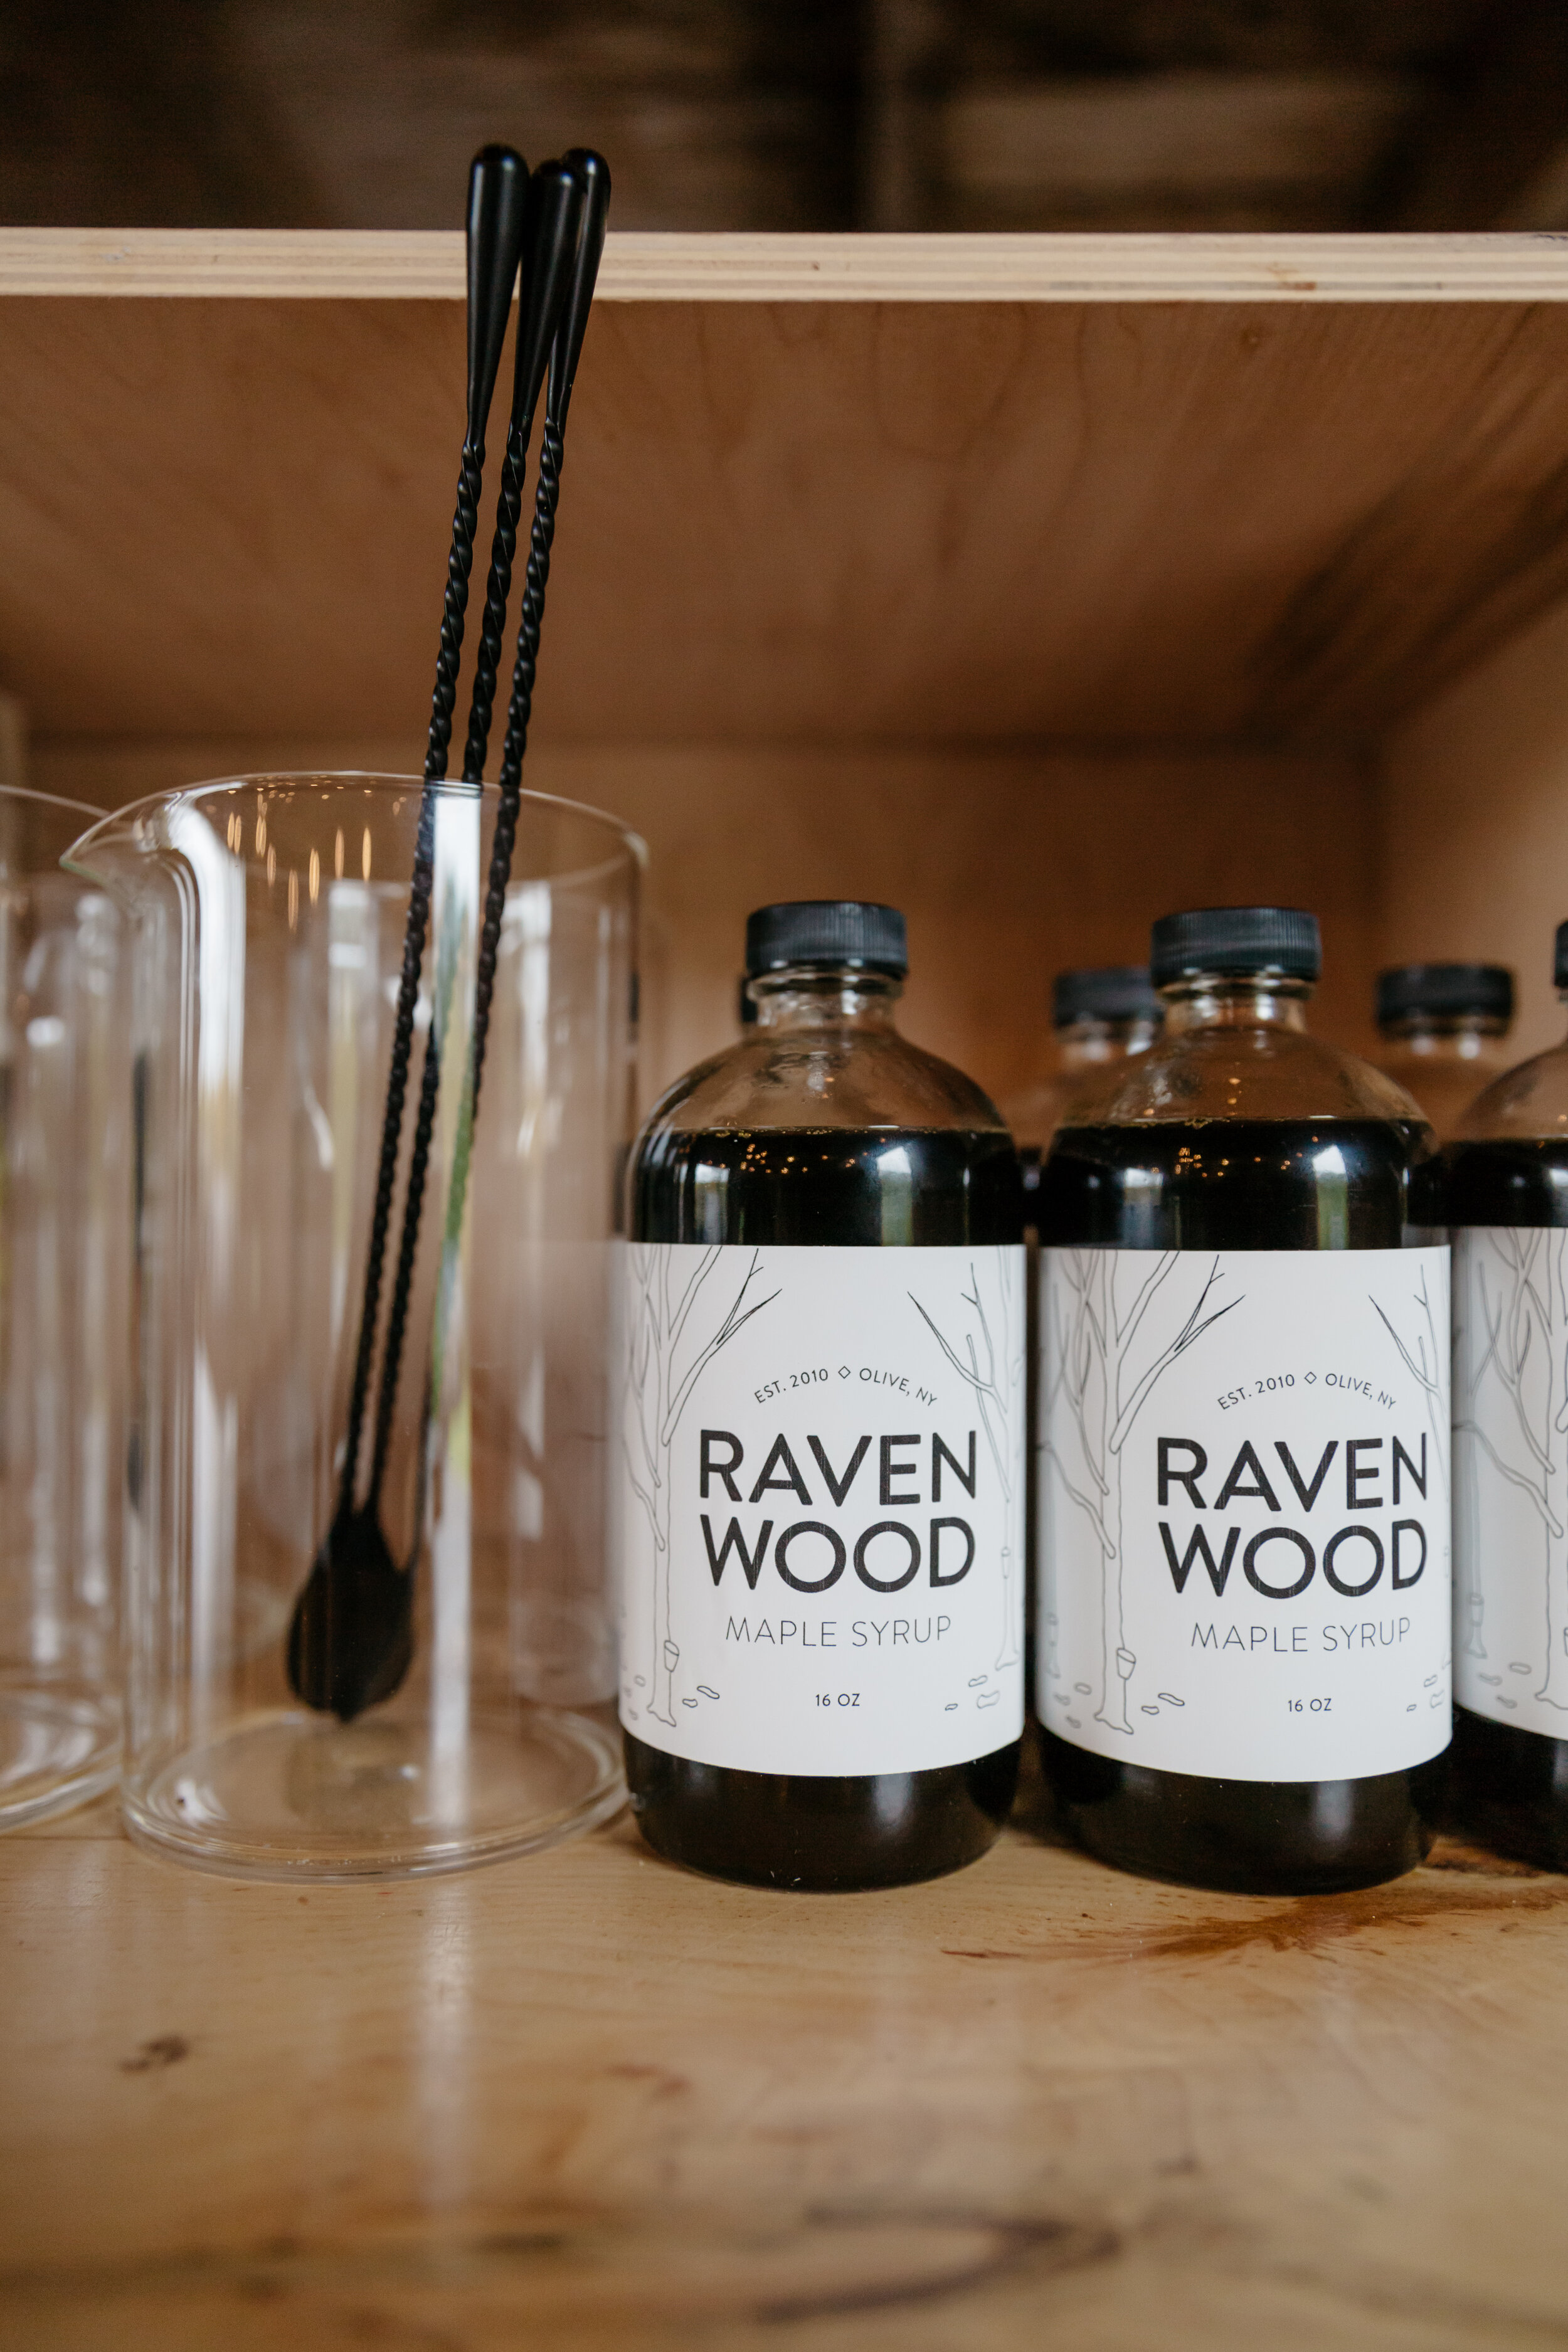 Ravenwood brand Maple syrup produced on their local land! It's exquisite!